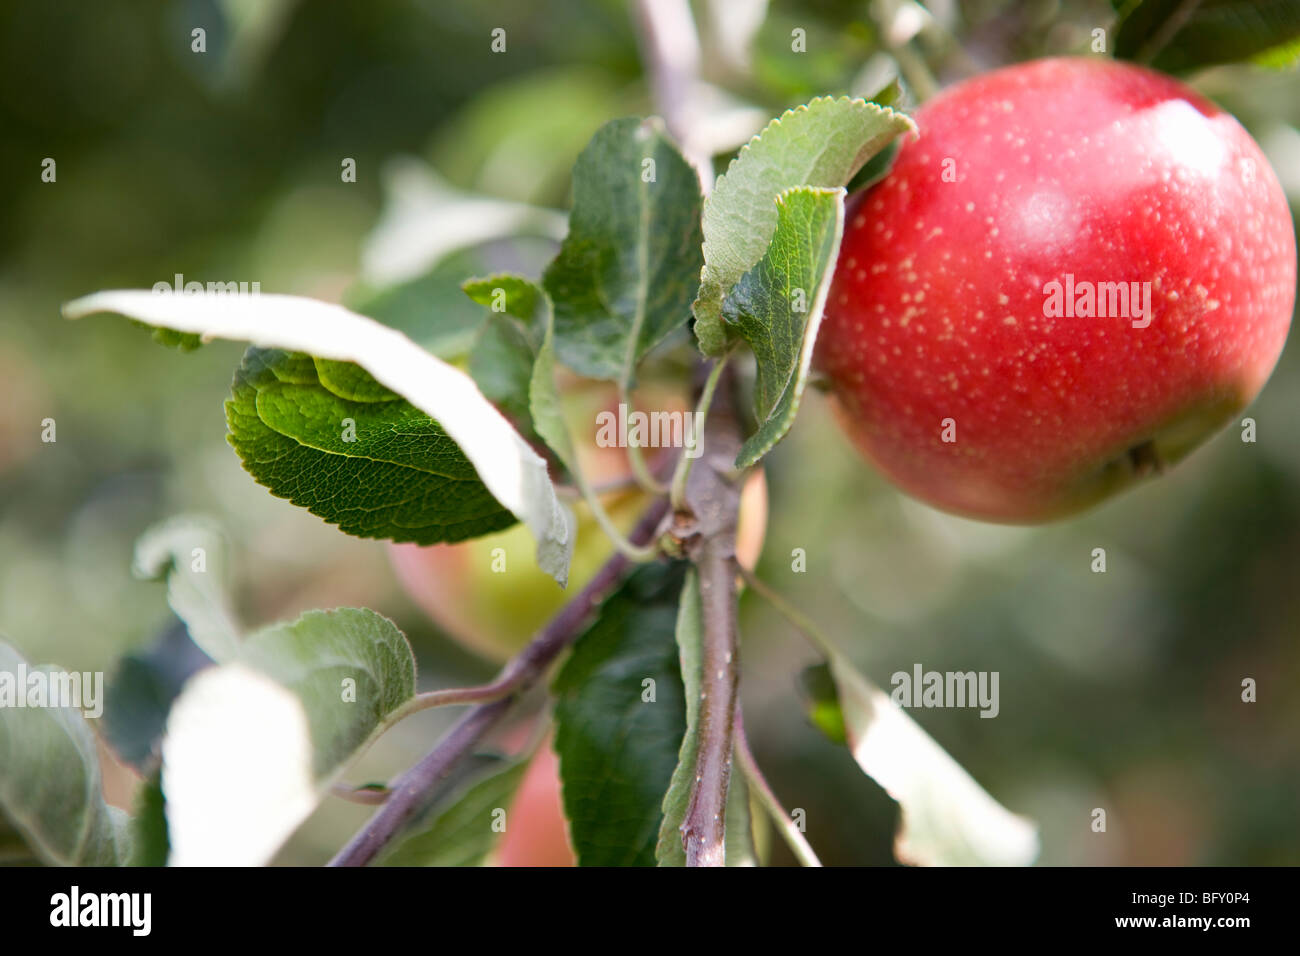 Perfect ripe red apple - Stock Image